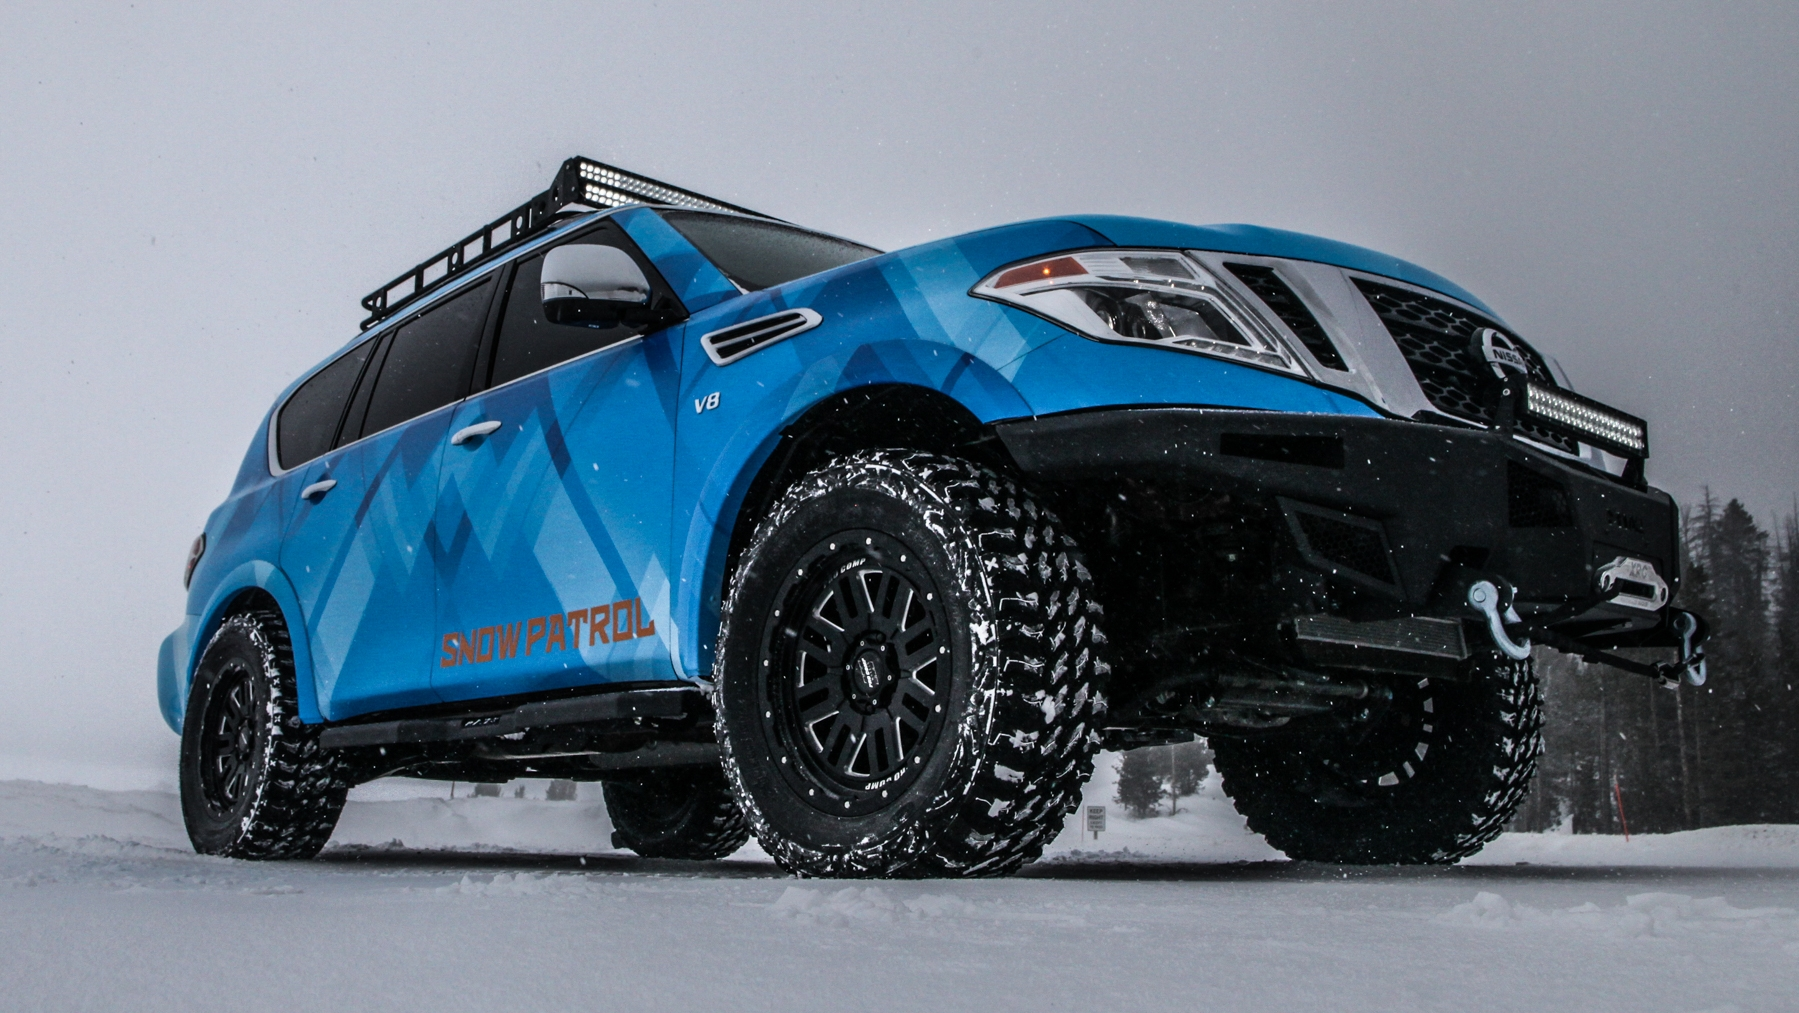 Nissan Nv Review >> 2018 Nissan Armada Snow Patrol Review - Top Speed